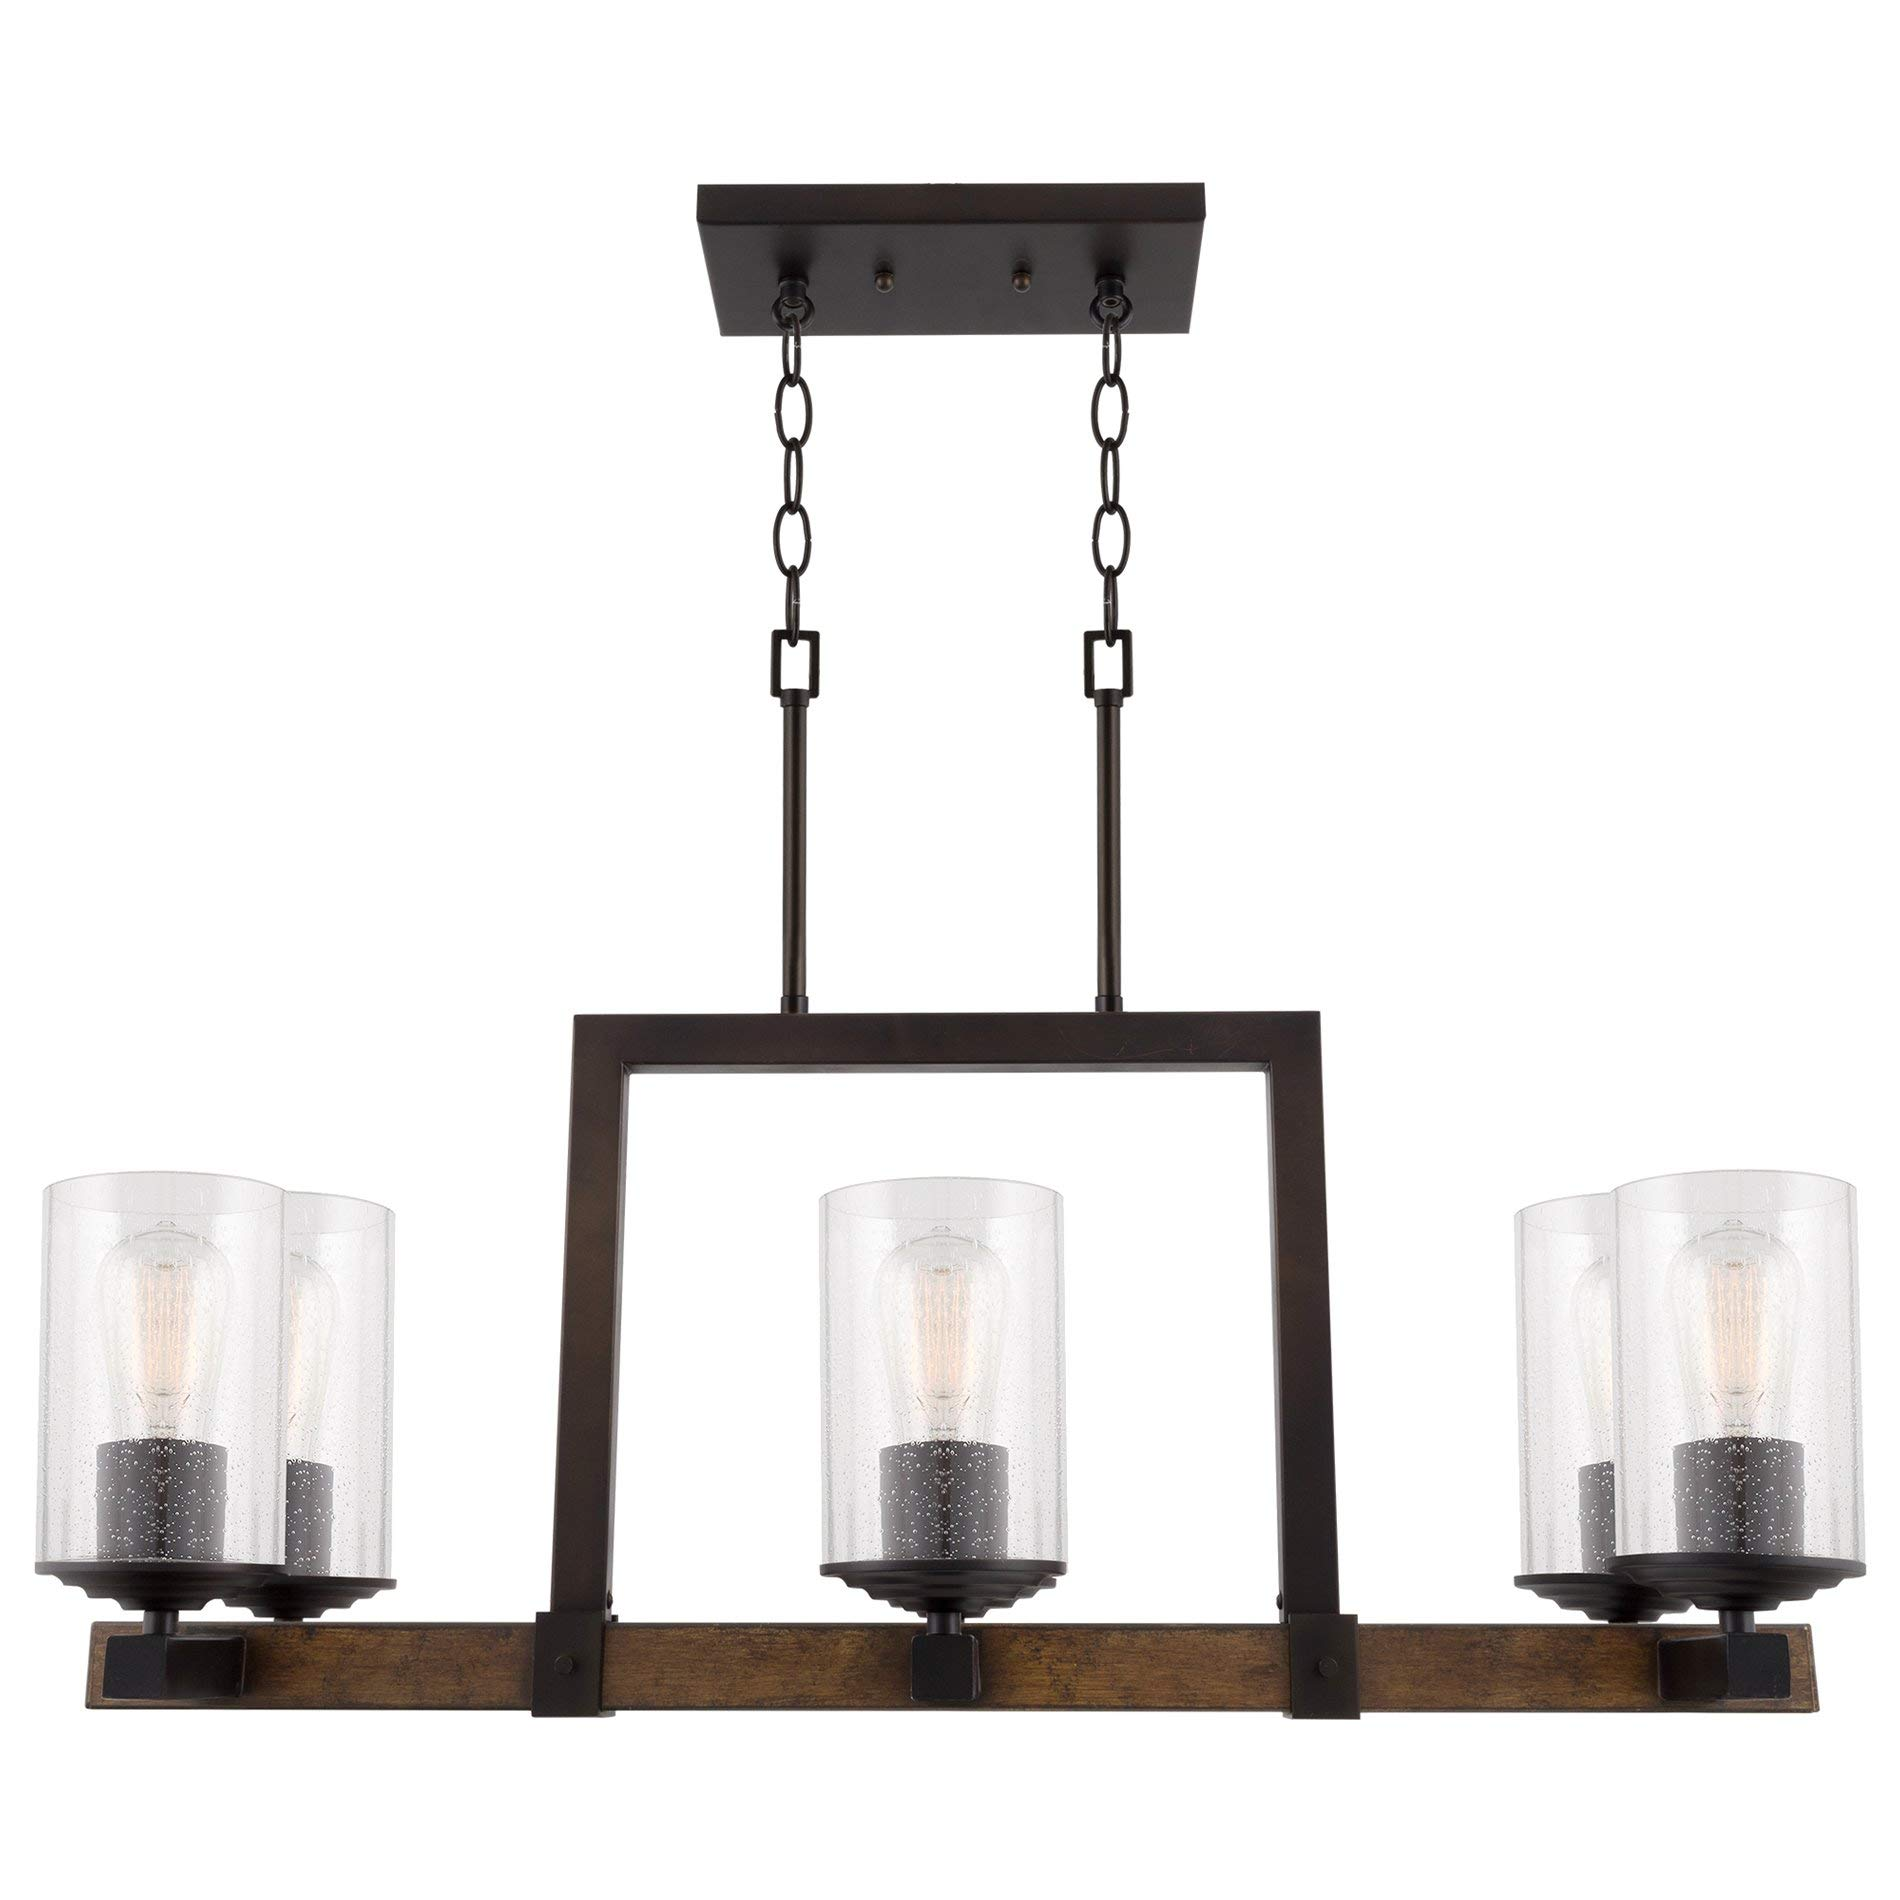 Kira Home Brentwood 30'' Large 6-Light Modern Rustic Island Light Chandelier + Mission Wood Style Metal Frame, Seeded Glass Shades, Oil-Rubbed Bronze Finish by Kira Home (Image #6)